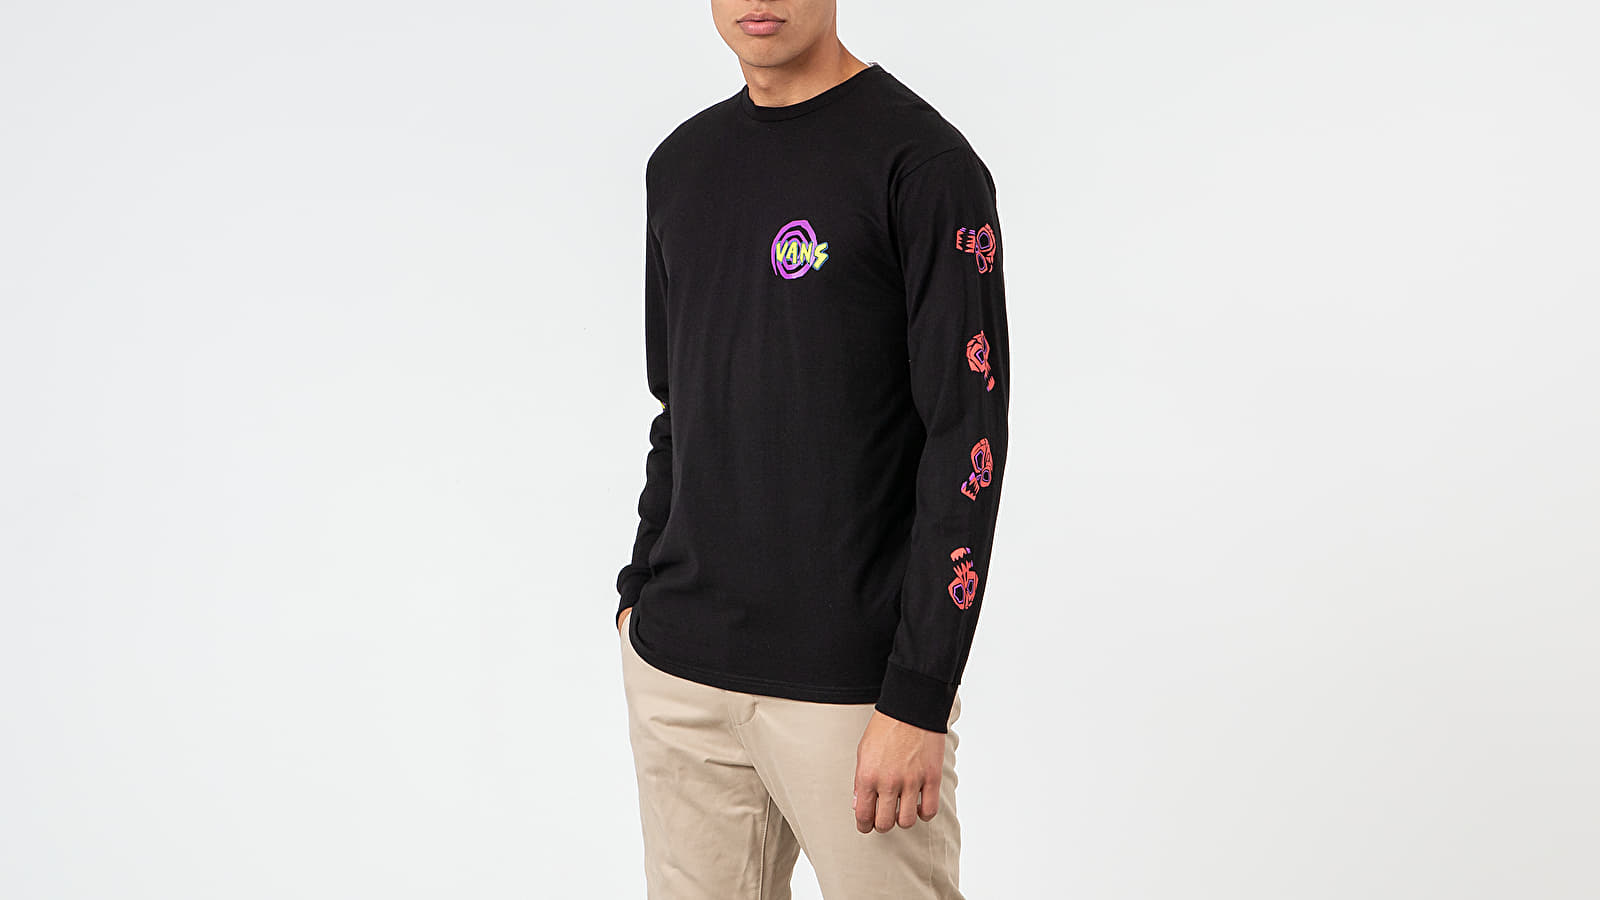 Vans x The Nightmare Before Christmas Oogie Boogie Longsleeve Tee (DISNEY)